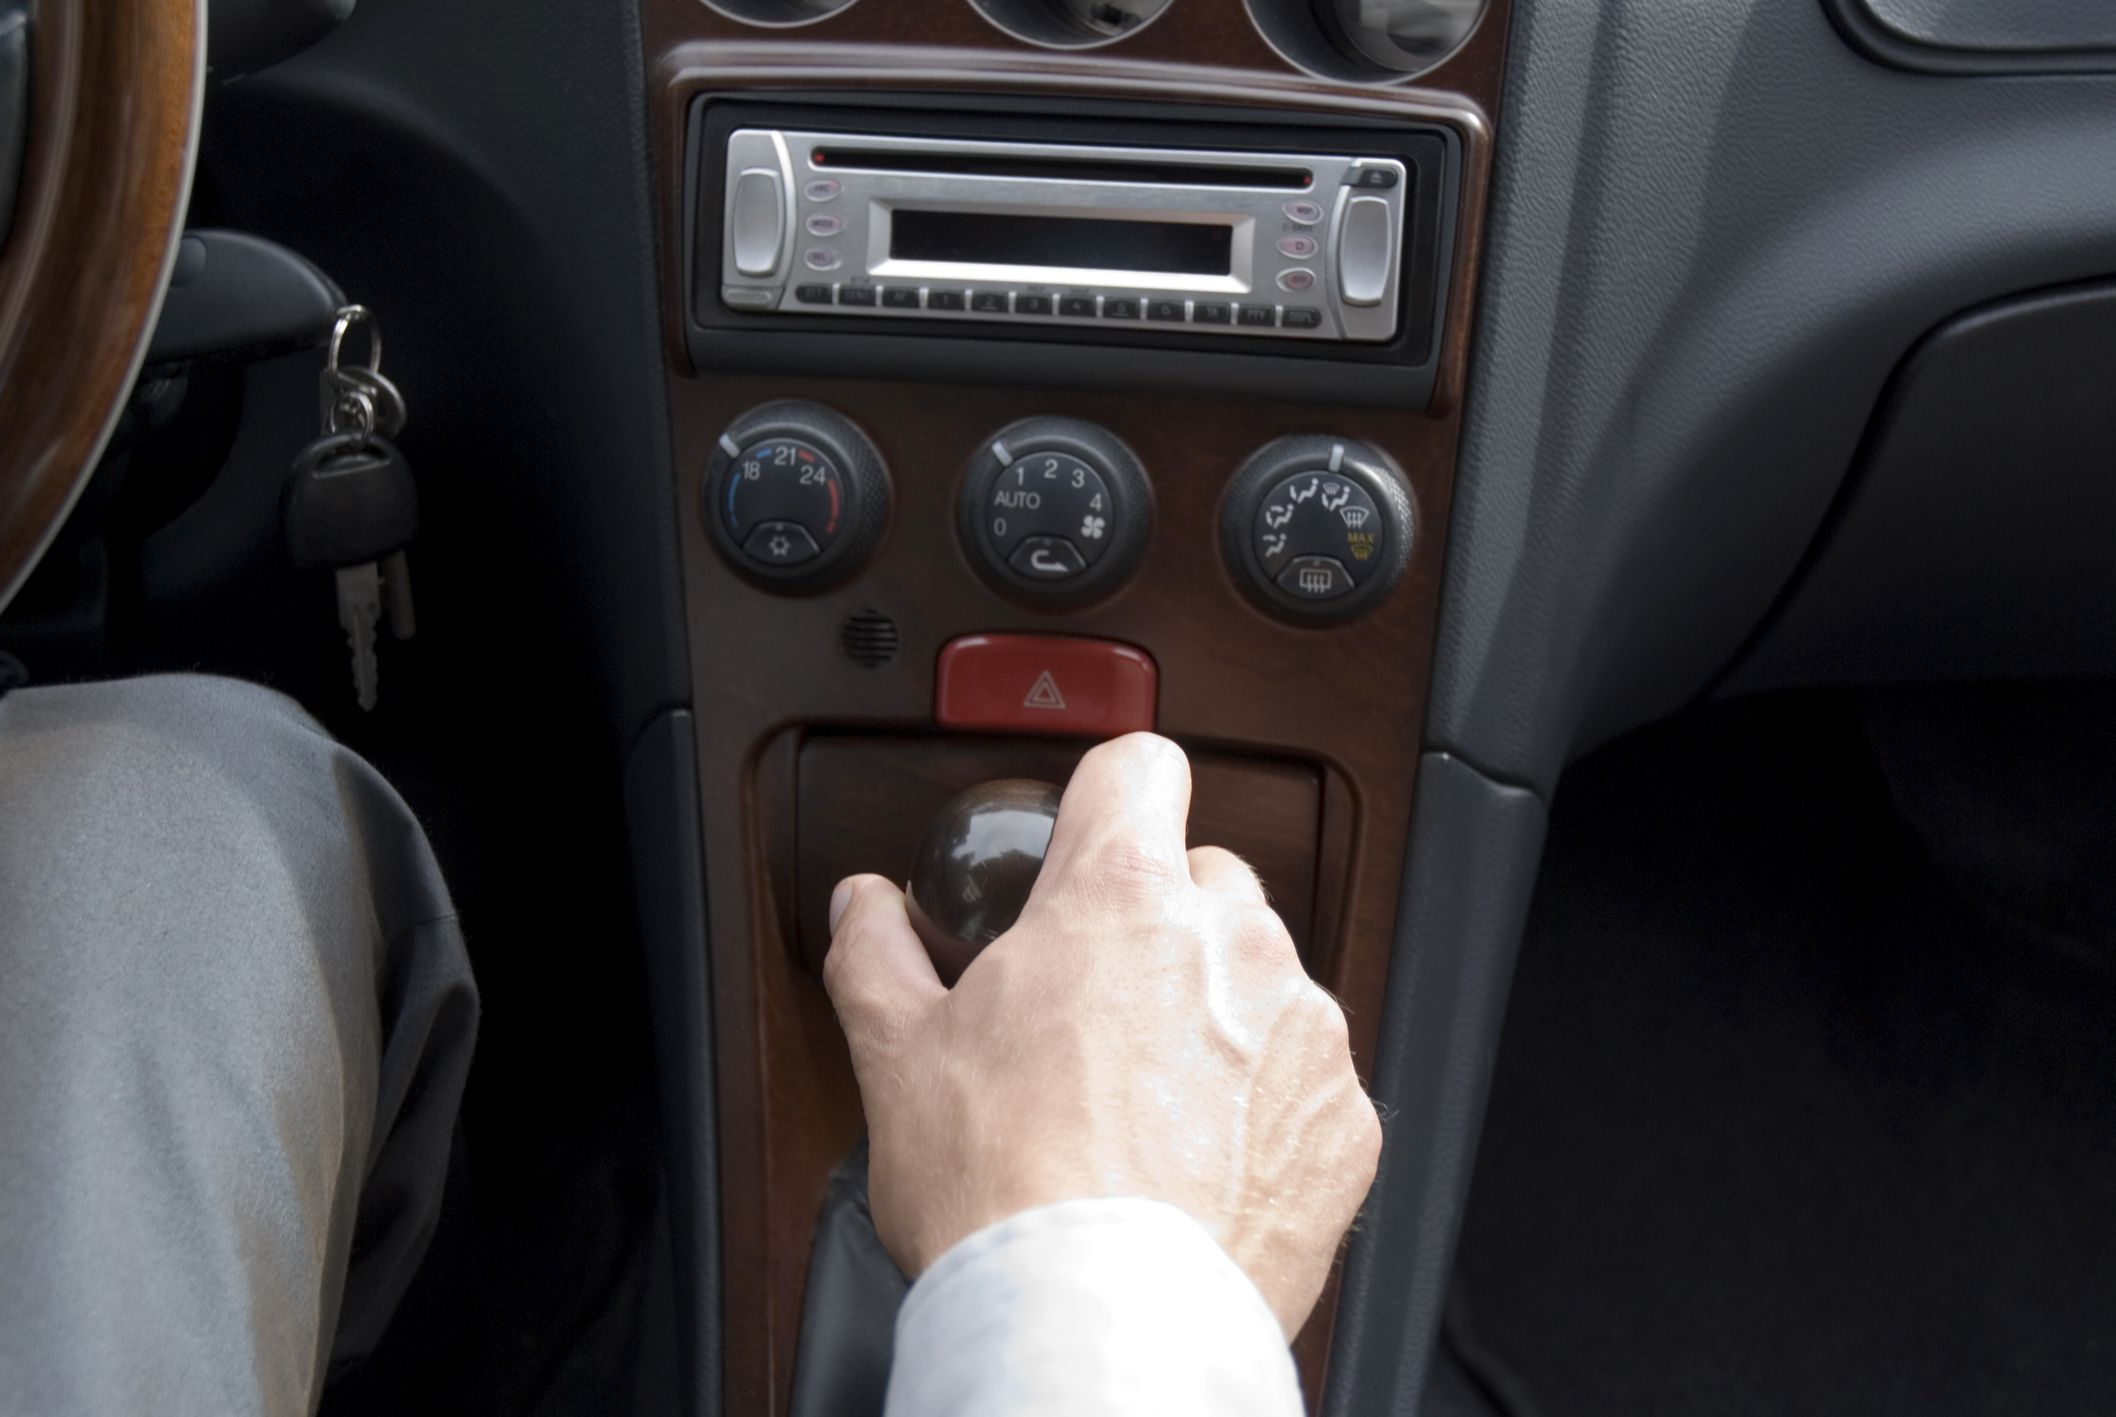 What Is A Single DIN Car Stereo?